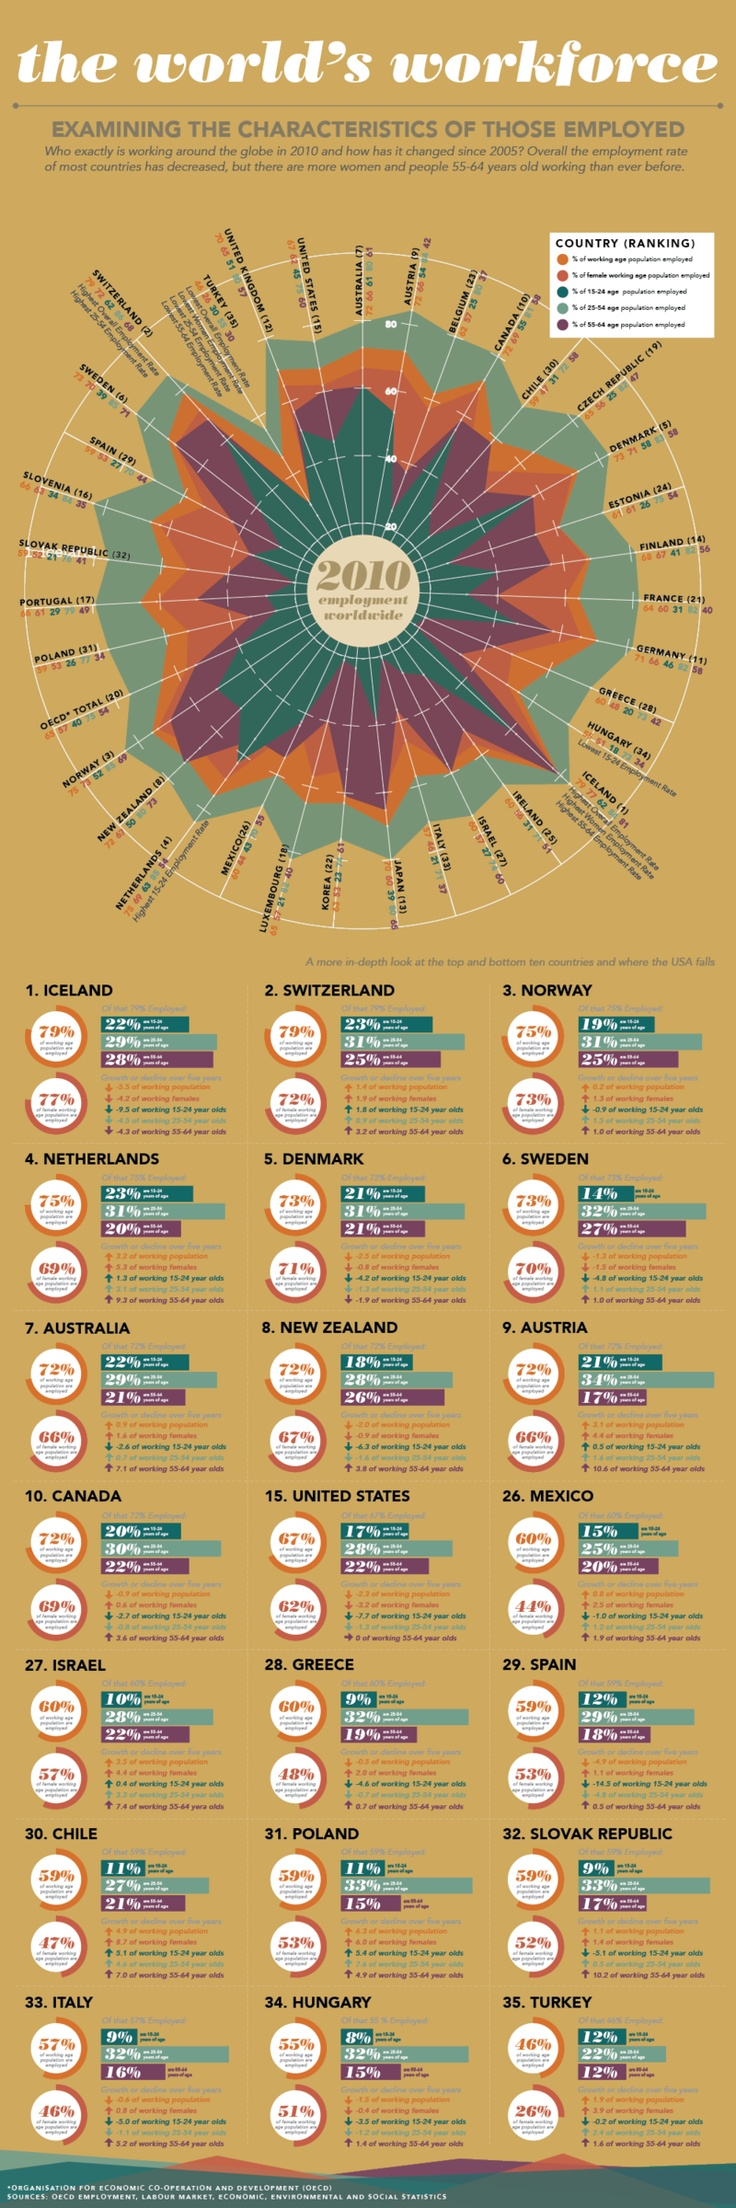 The World's Workforce [infographic] Infographic, Graphic